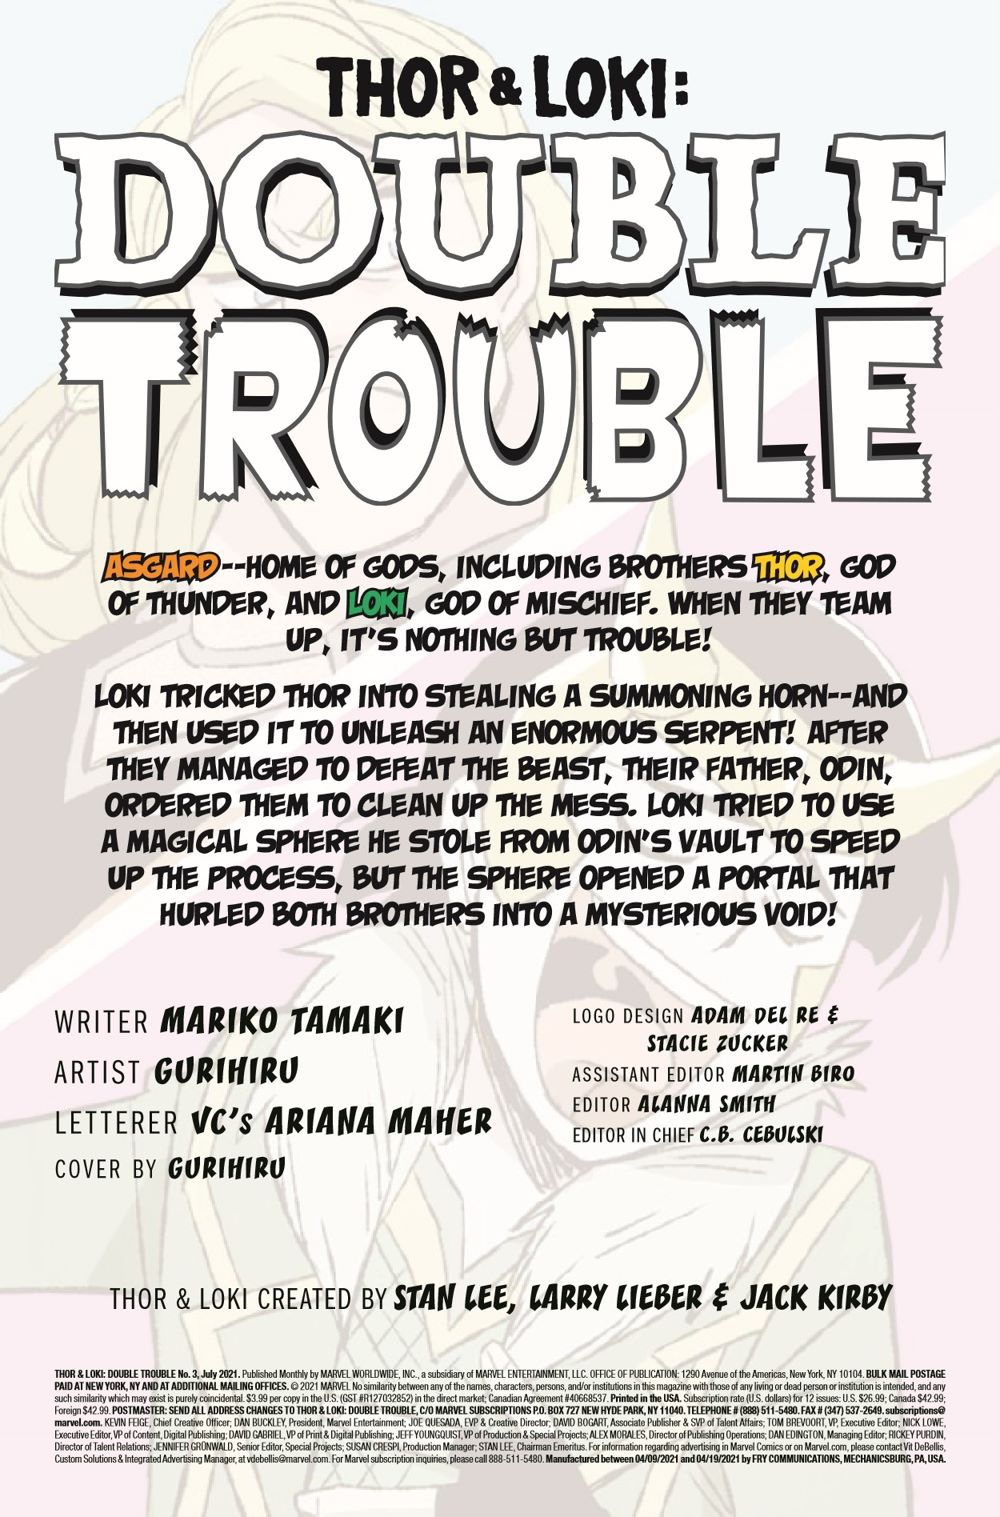 THORLOKIDT2021003_Preview-2 ComicList Previews: THOR AND LOKI DOUBLE TROUBLE #3 (OF 4)